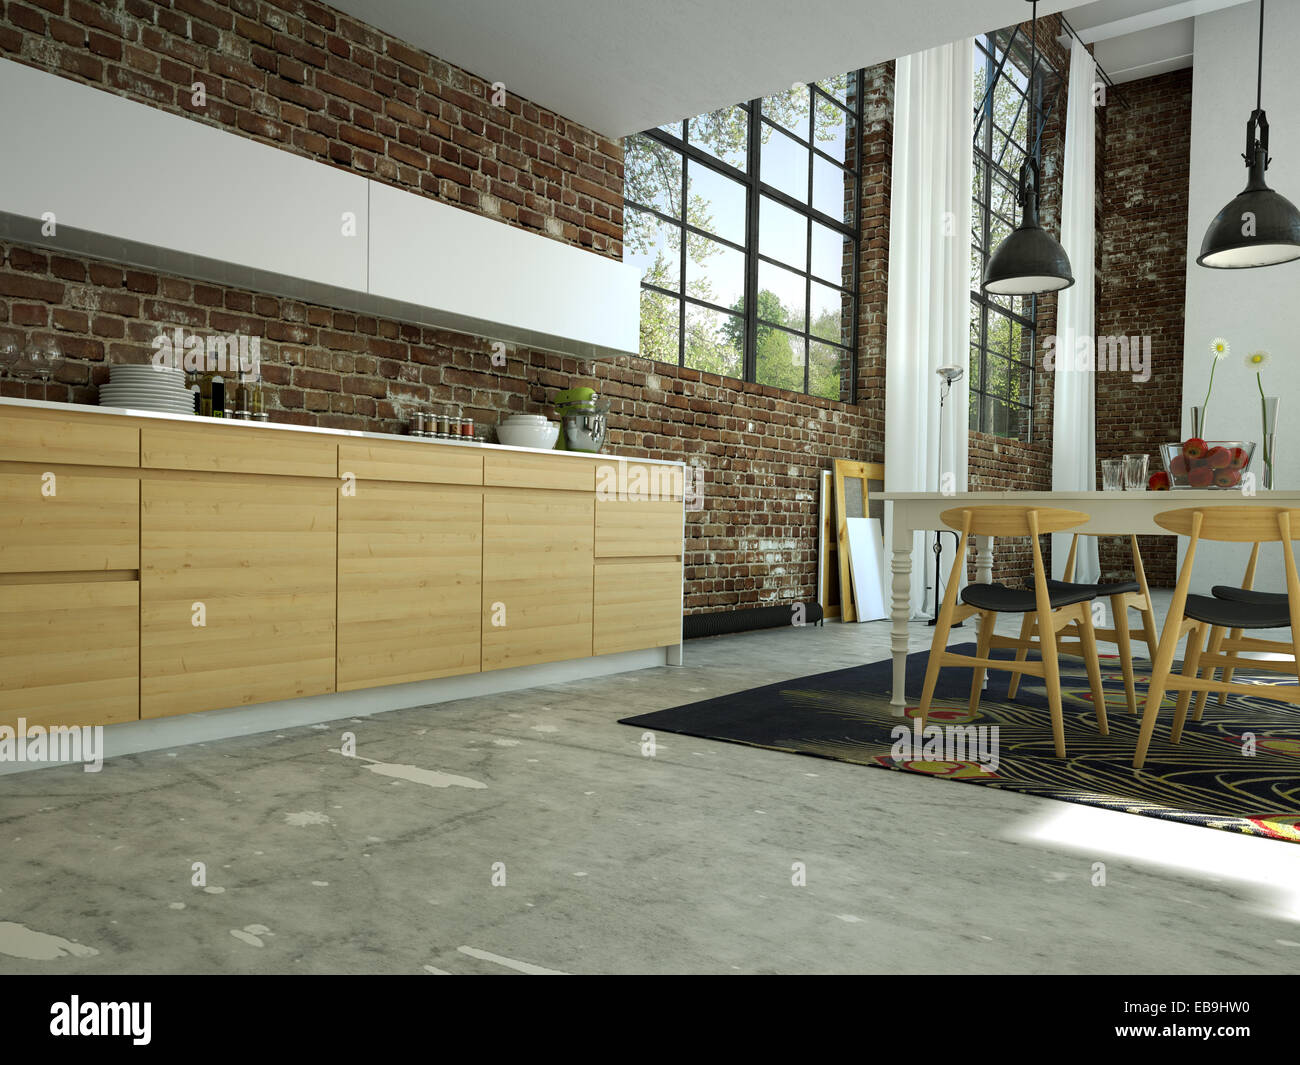 Loft Kitchen Loft Kitchen In Open Space 3d Rendering Stock Photo Royalty Free